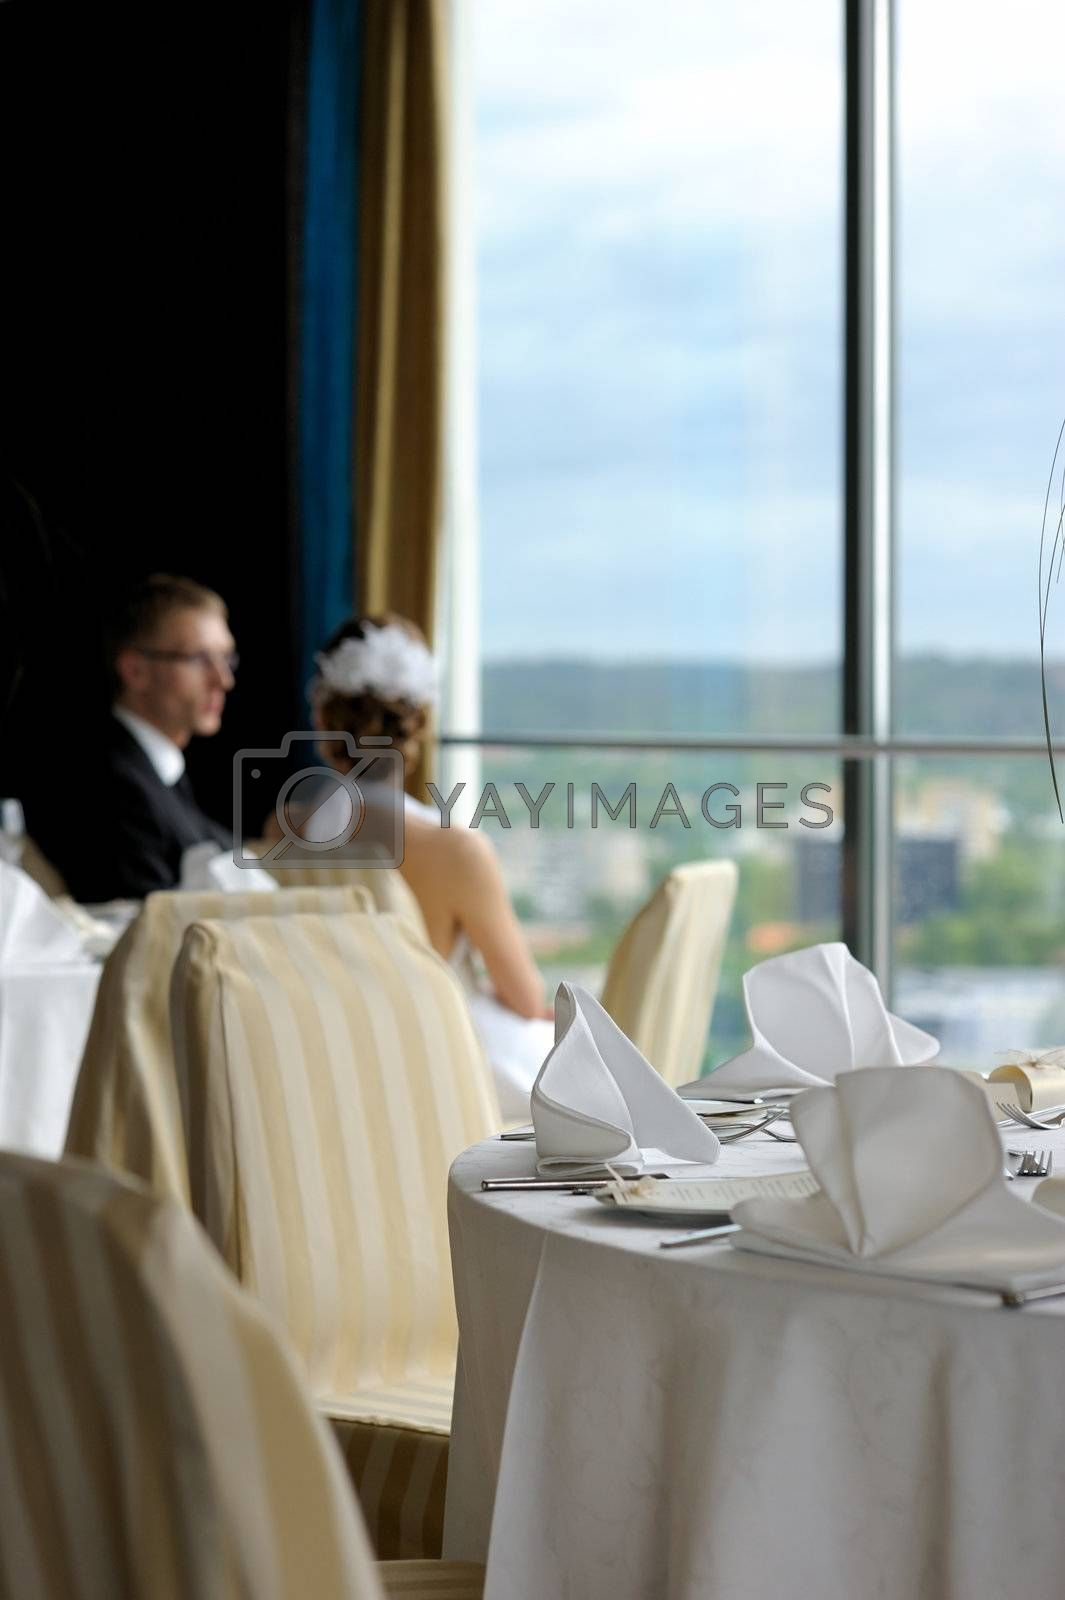 Groom and bride in the cafe looking at the city through the window